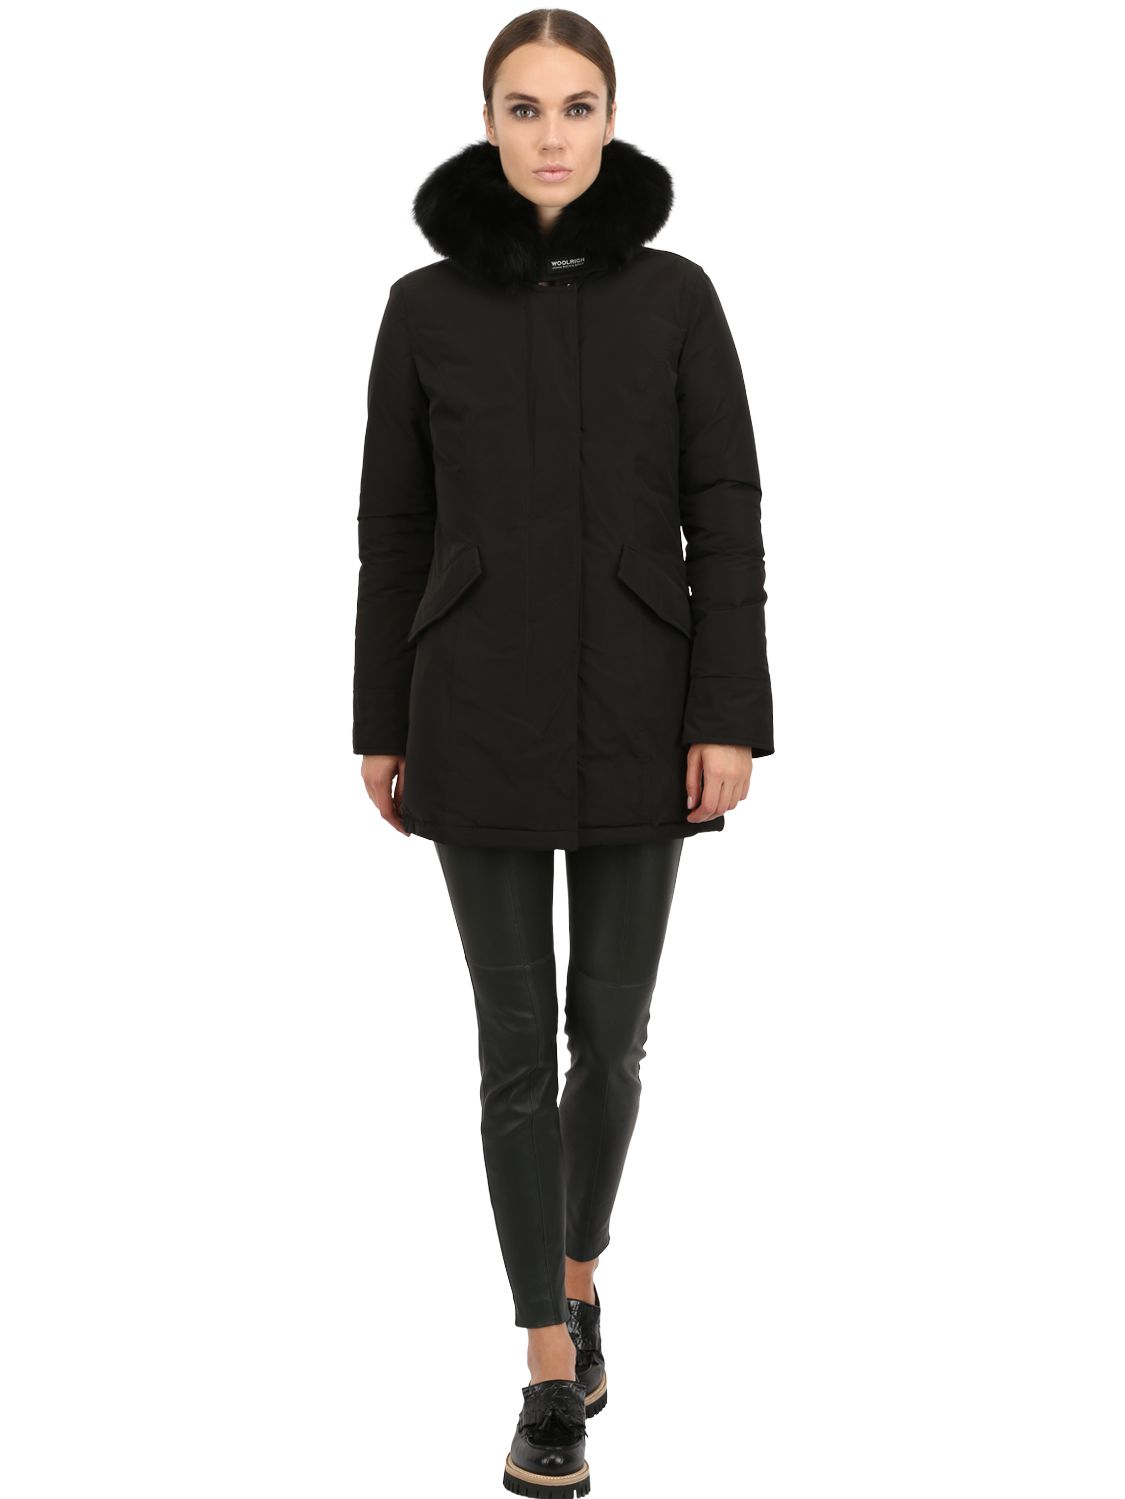 woolrich shape memory luxury arctic parka in black lyst. Black Bedroom Furniture Sets. Home Design Ideas